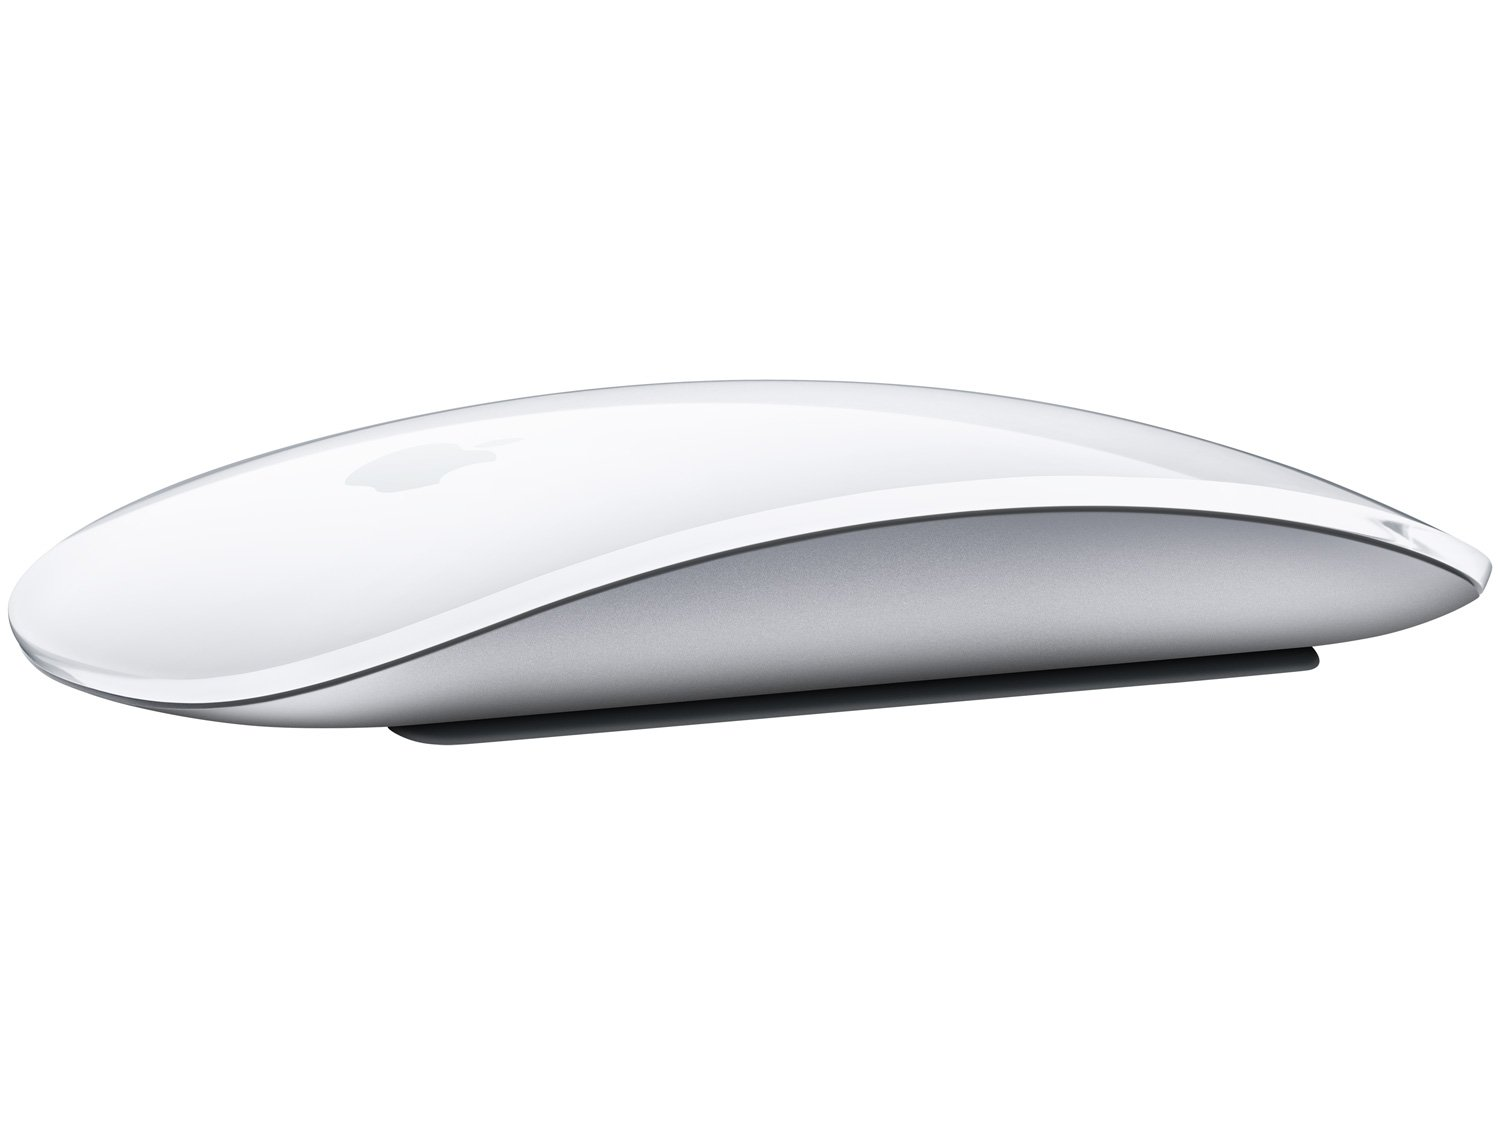 Foto 1 - Mouse Sem Fio Apple - Magic Mouse 2